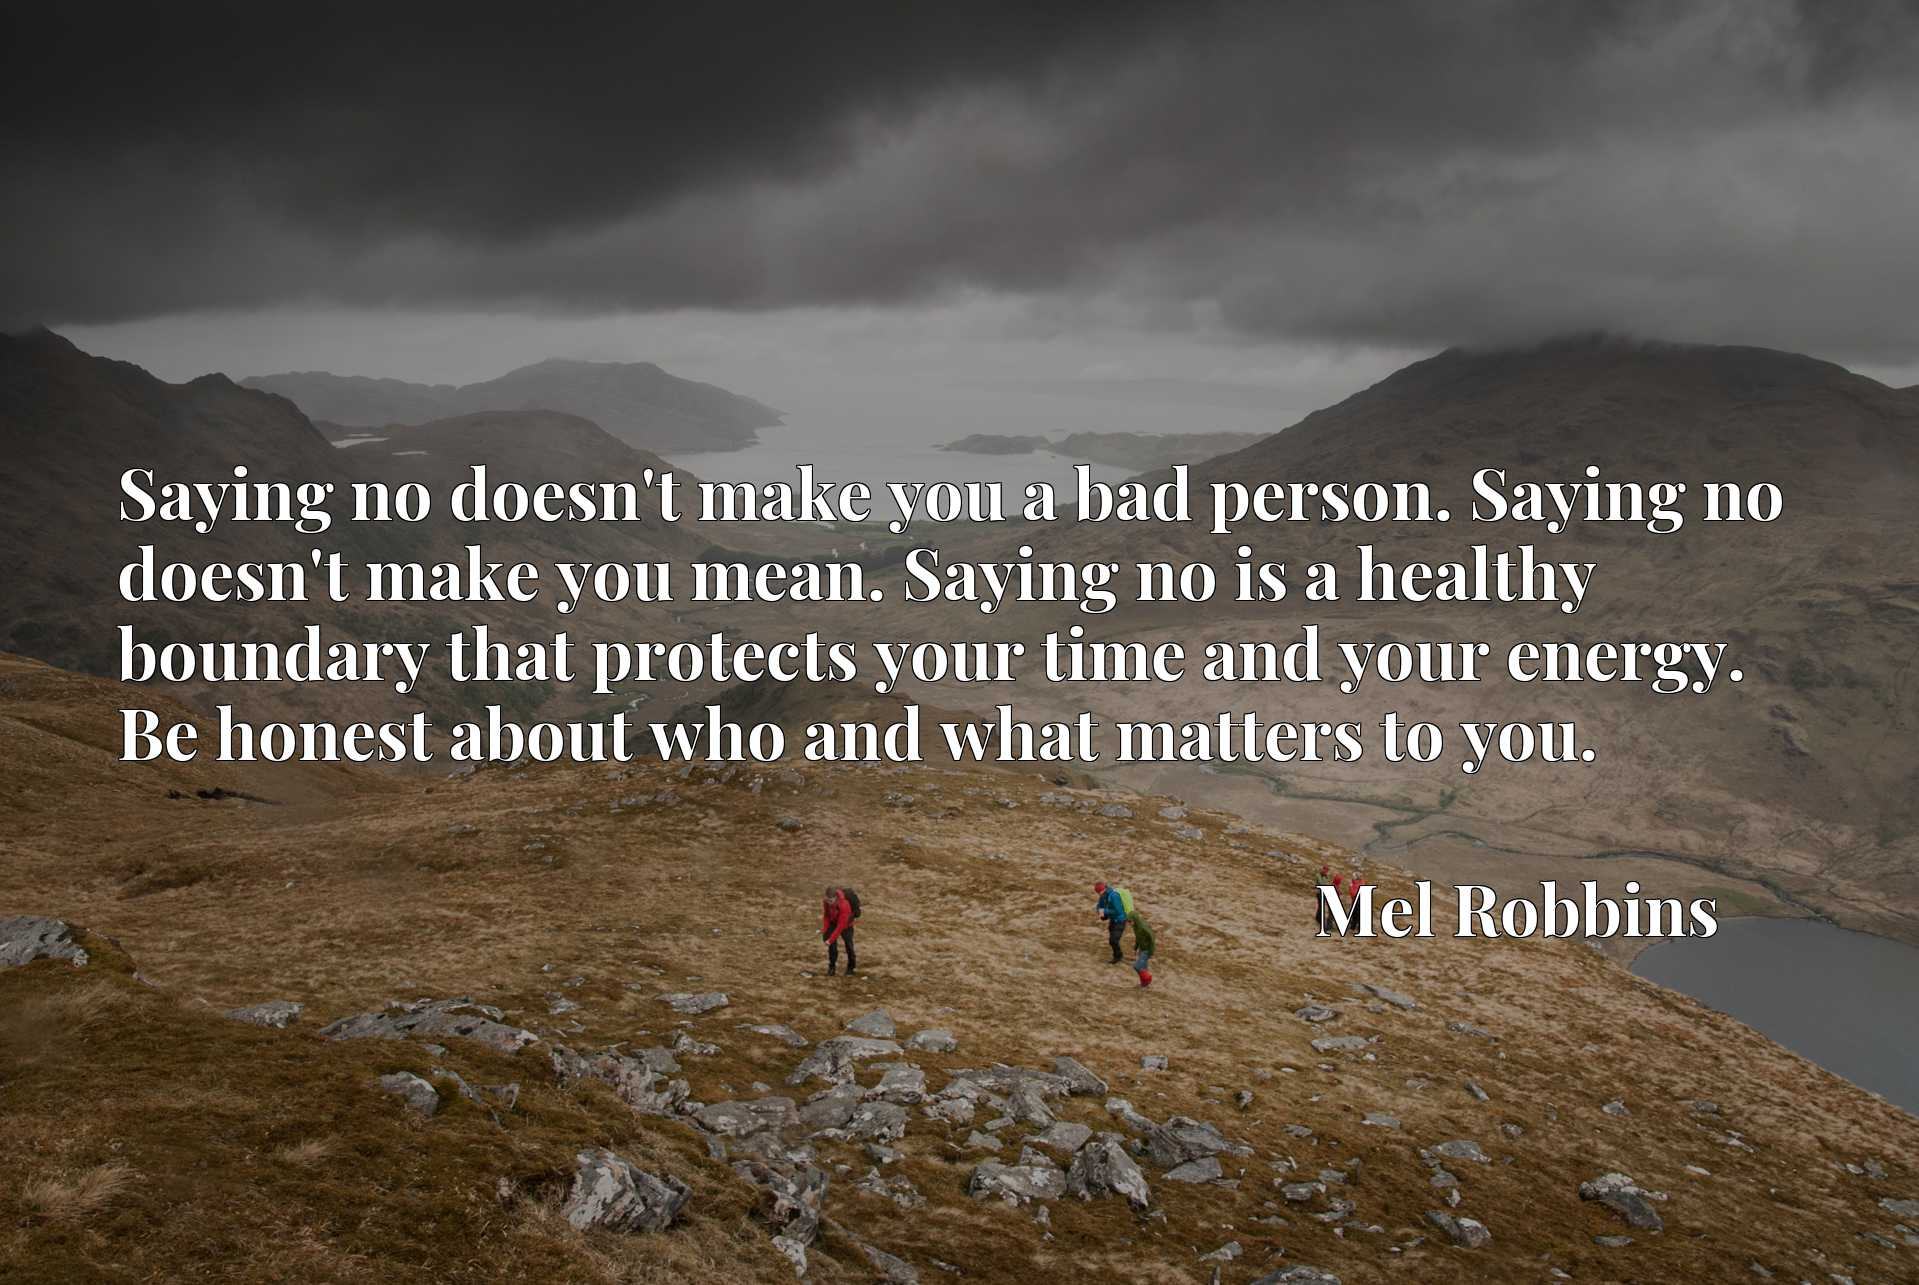 Saying no doesn't make you a bad person. Saying no doesn't make you mean. Saying no is a healthy boundary that protects your time and your energy. Be honest about who and what matters to you.